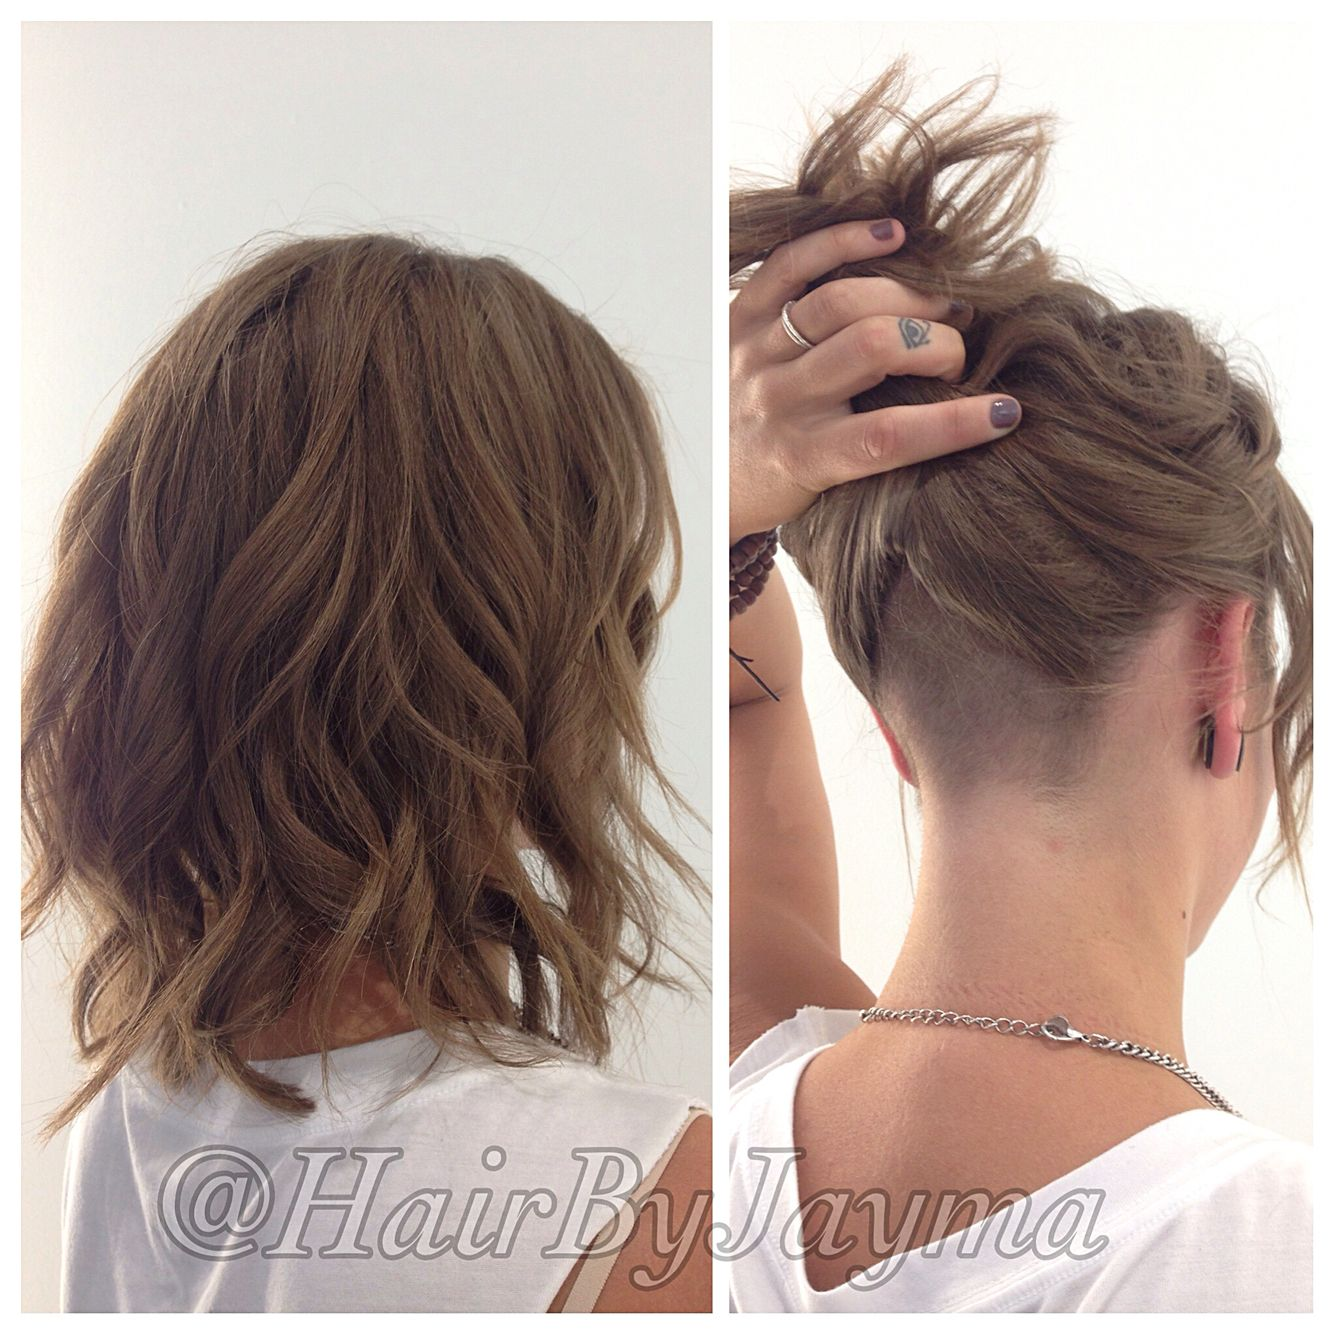 Wavy bob and undercut #hairbyjayma | Hair by Jayma ...